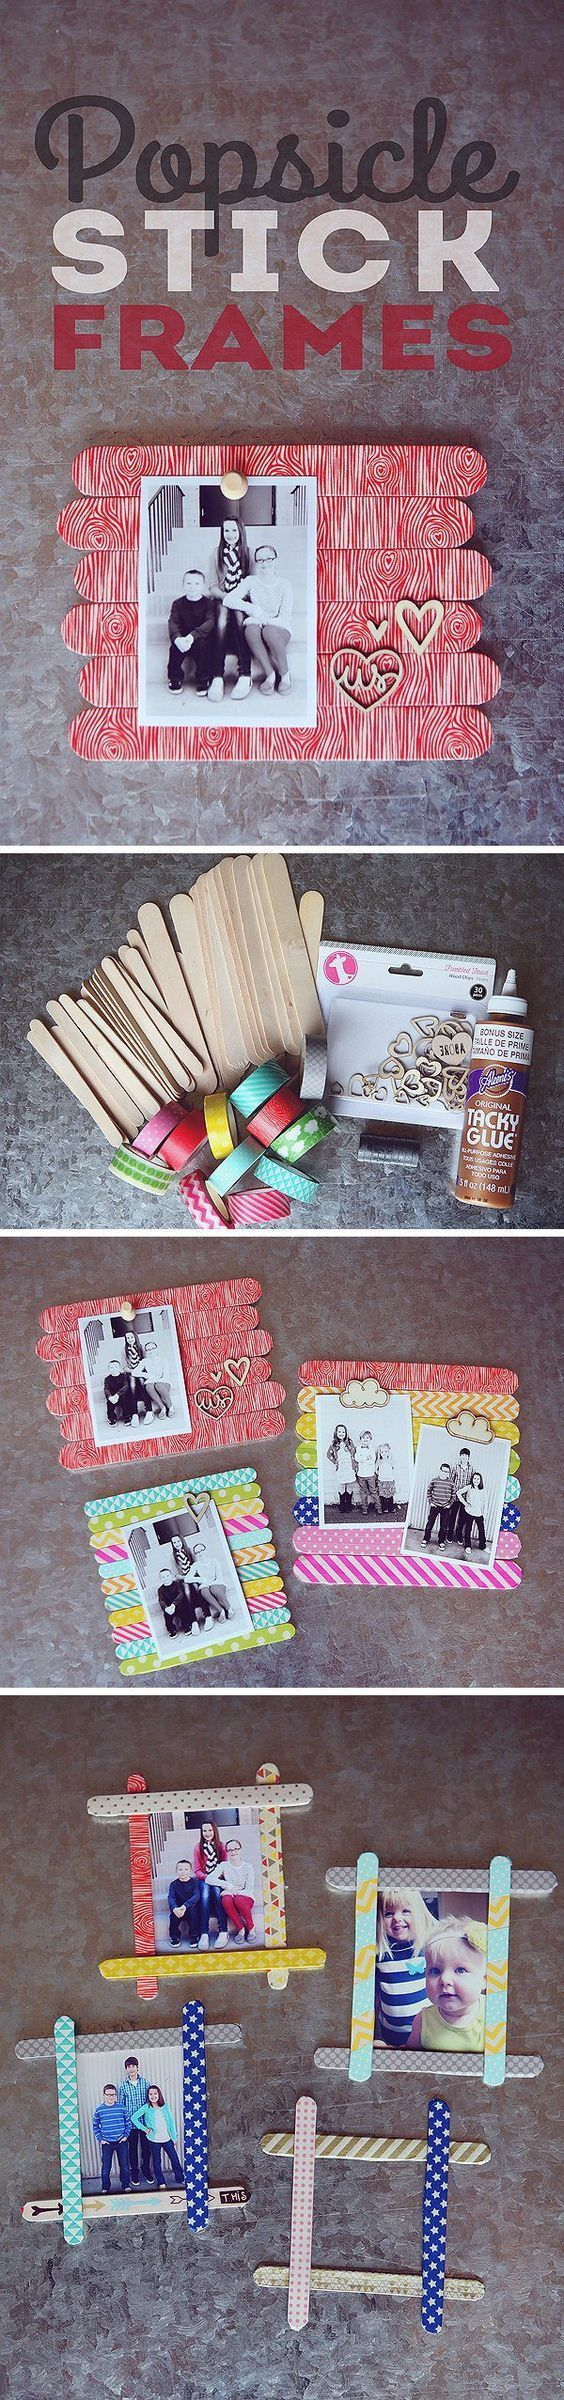 DIY Popsicle Stick Frames